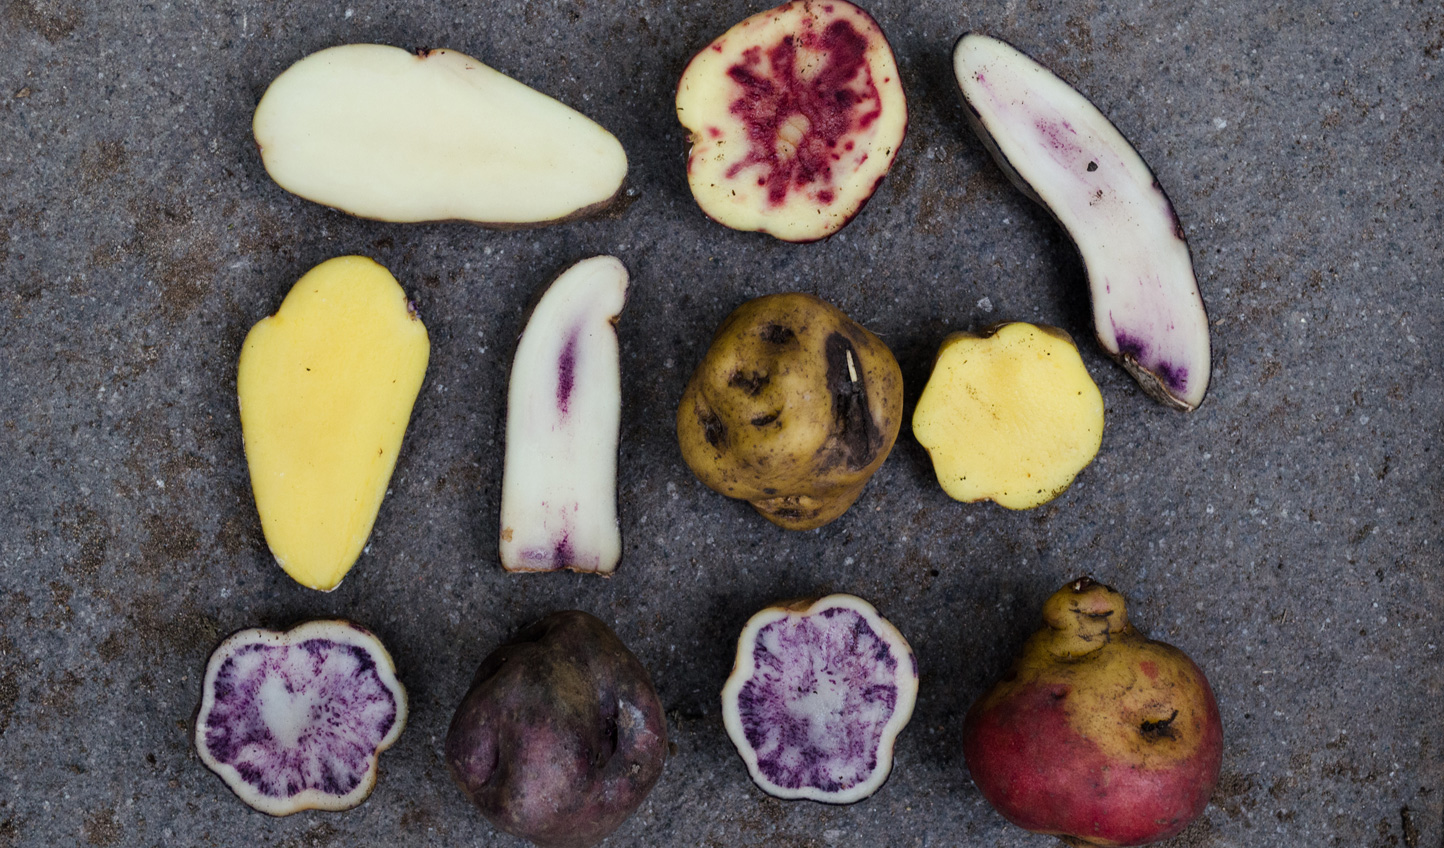 Peru is famous for its enormous variety of potatoes